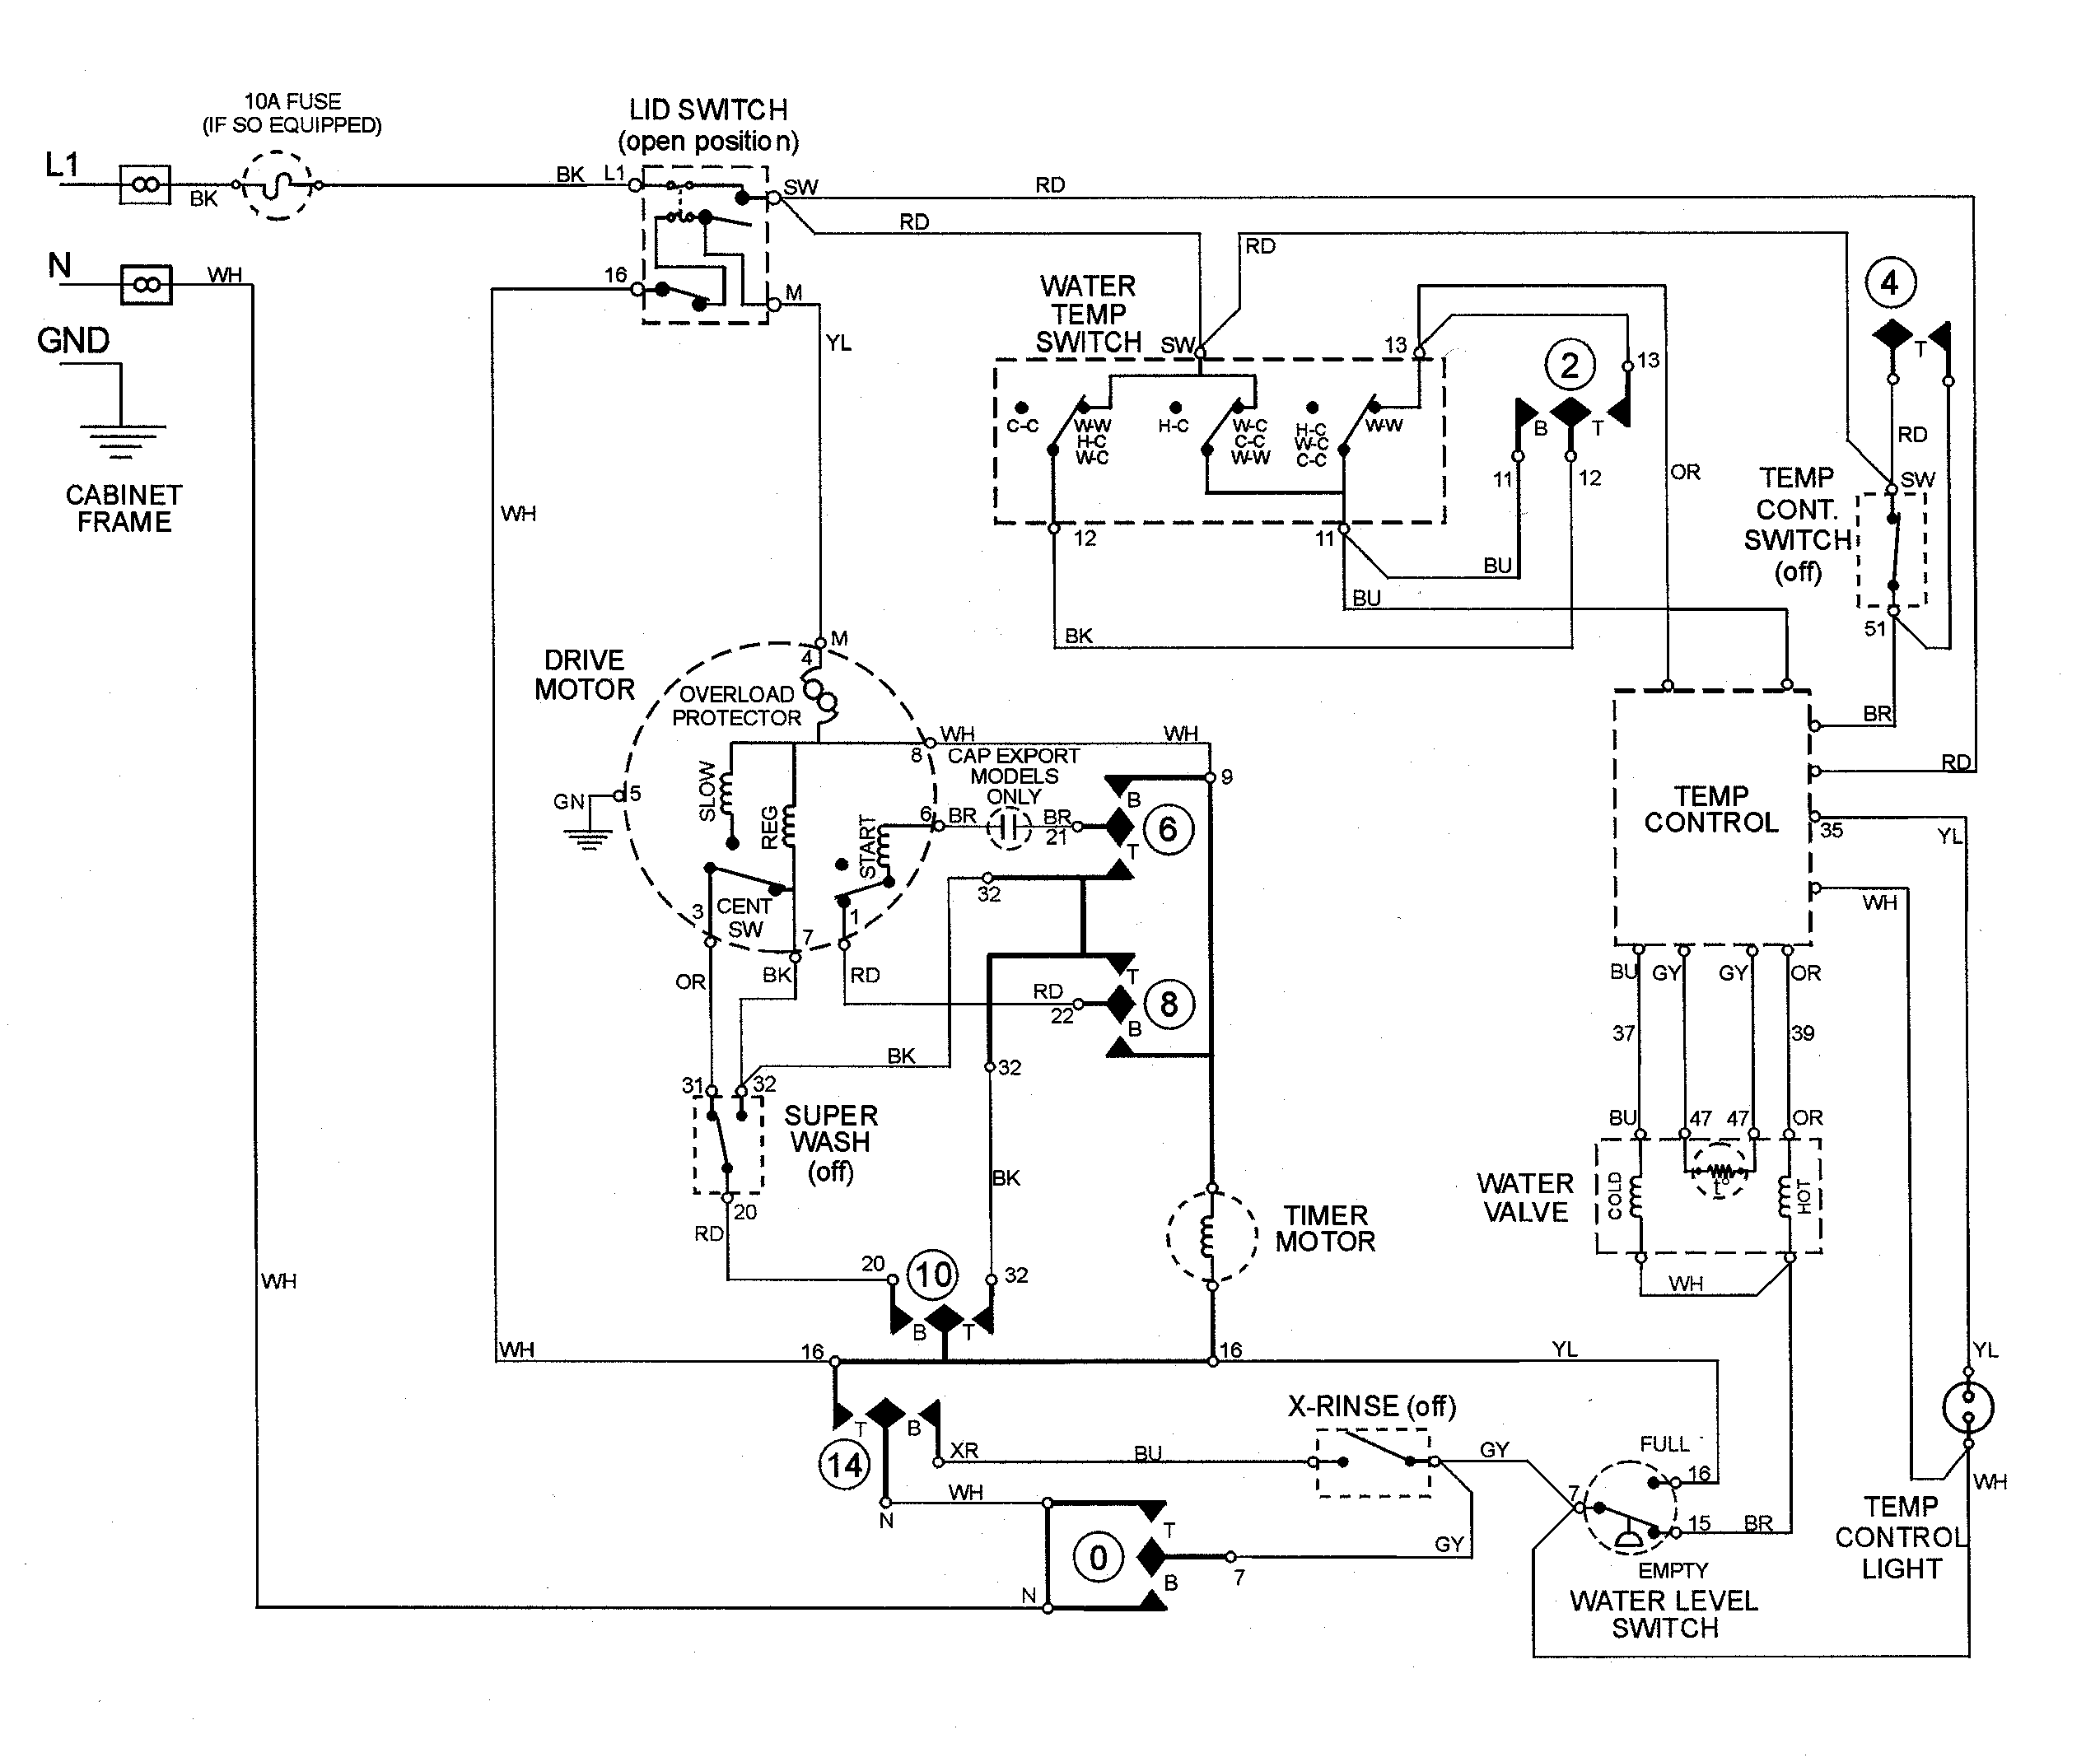 Ge Electric Wiring Diagram Wiring Diagram Schematics GE Motor Family Ge  Motor Diagrams